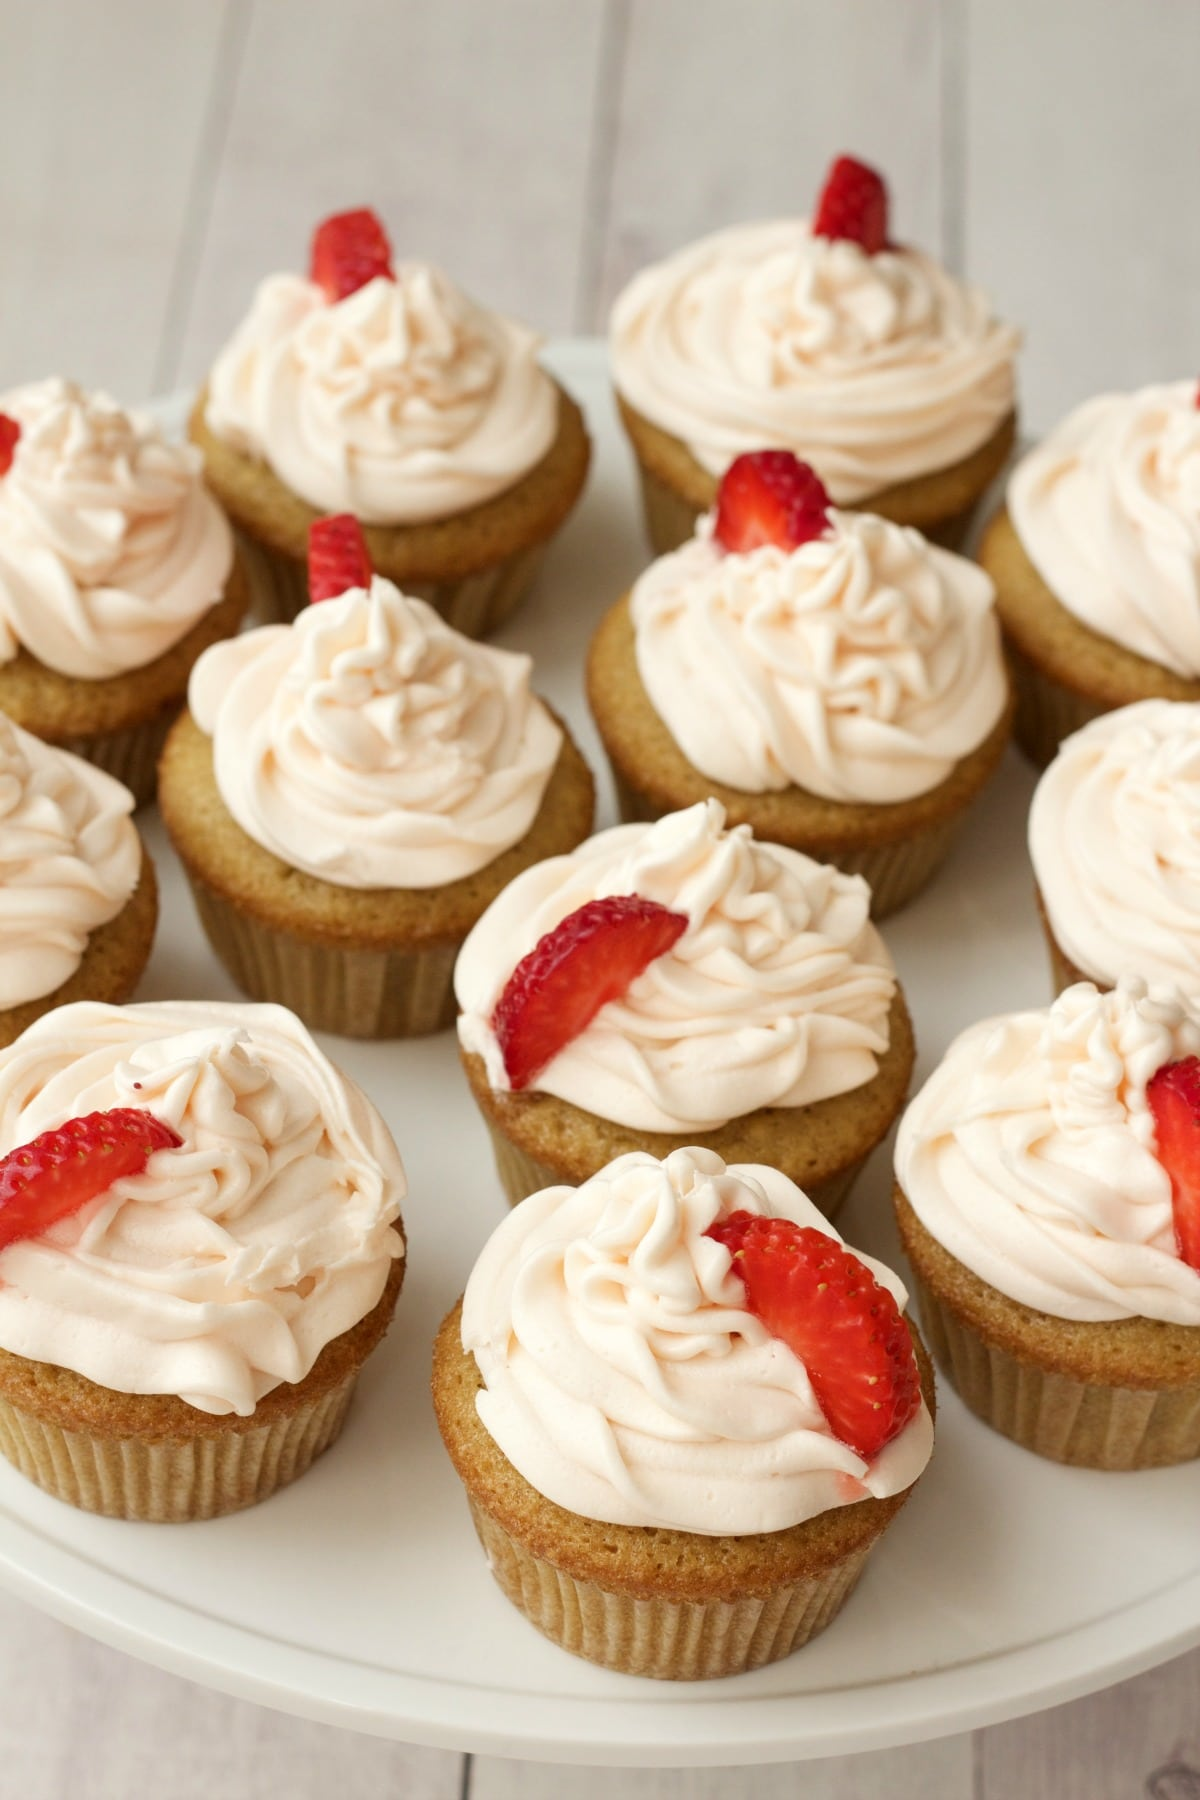 Vegan vanilla cupcakes with strawberry vanilla frosting and fresh strawberry pieces on a white cake stand.